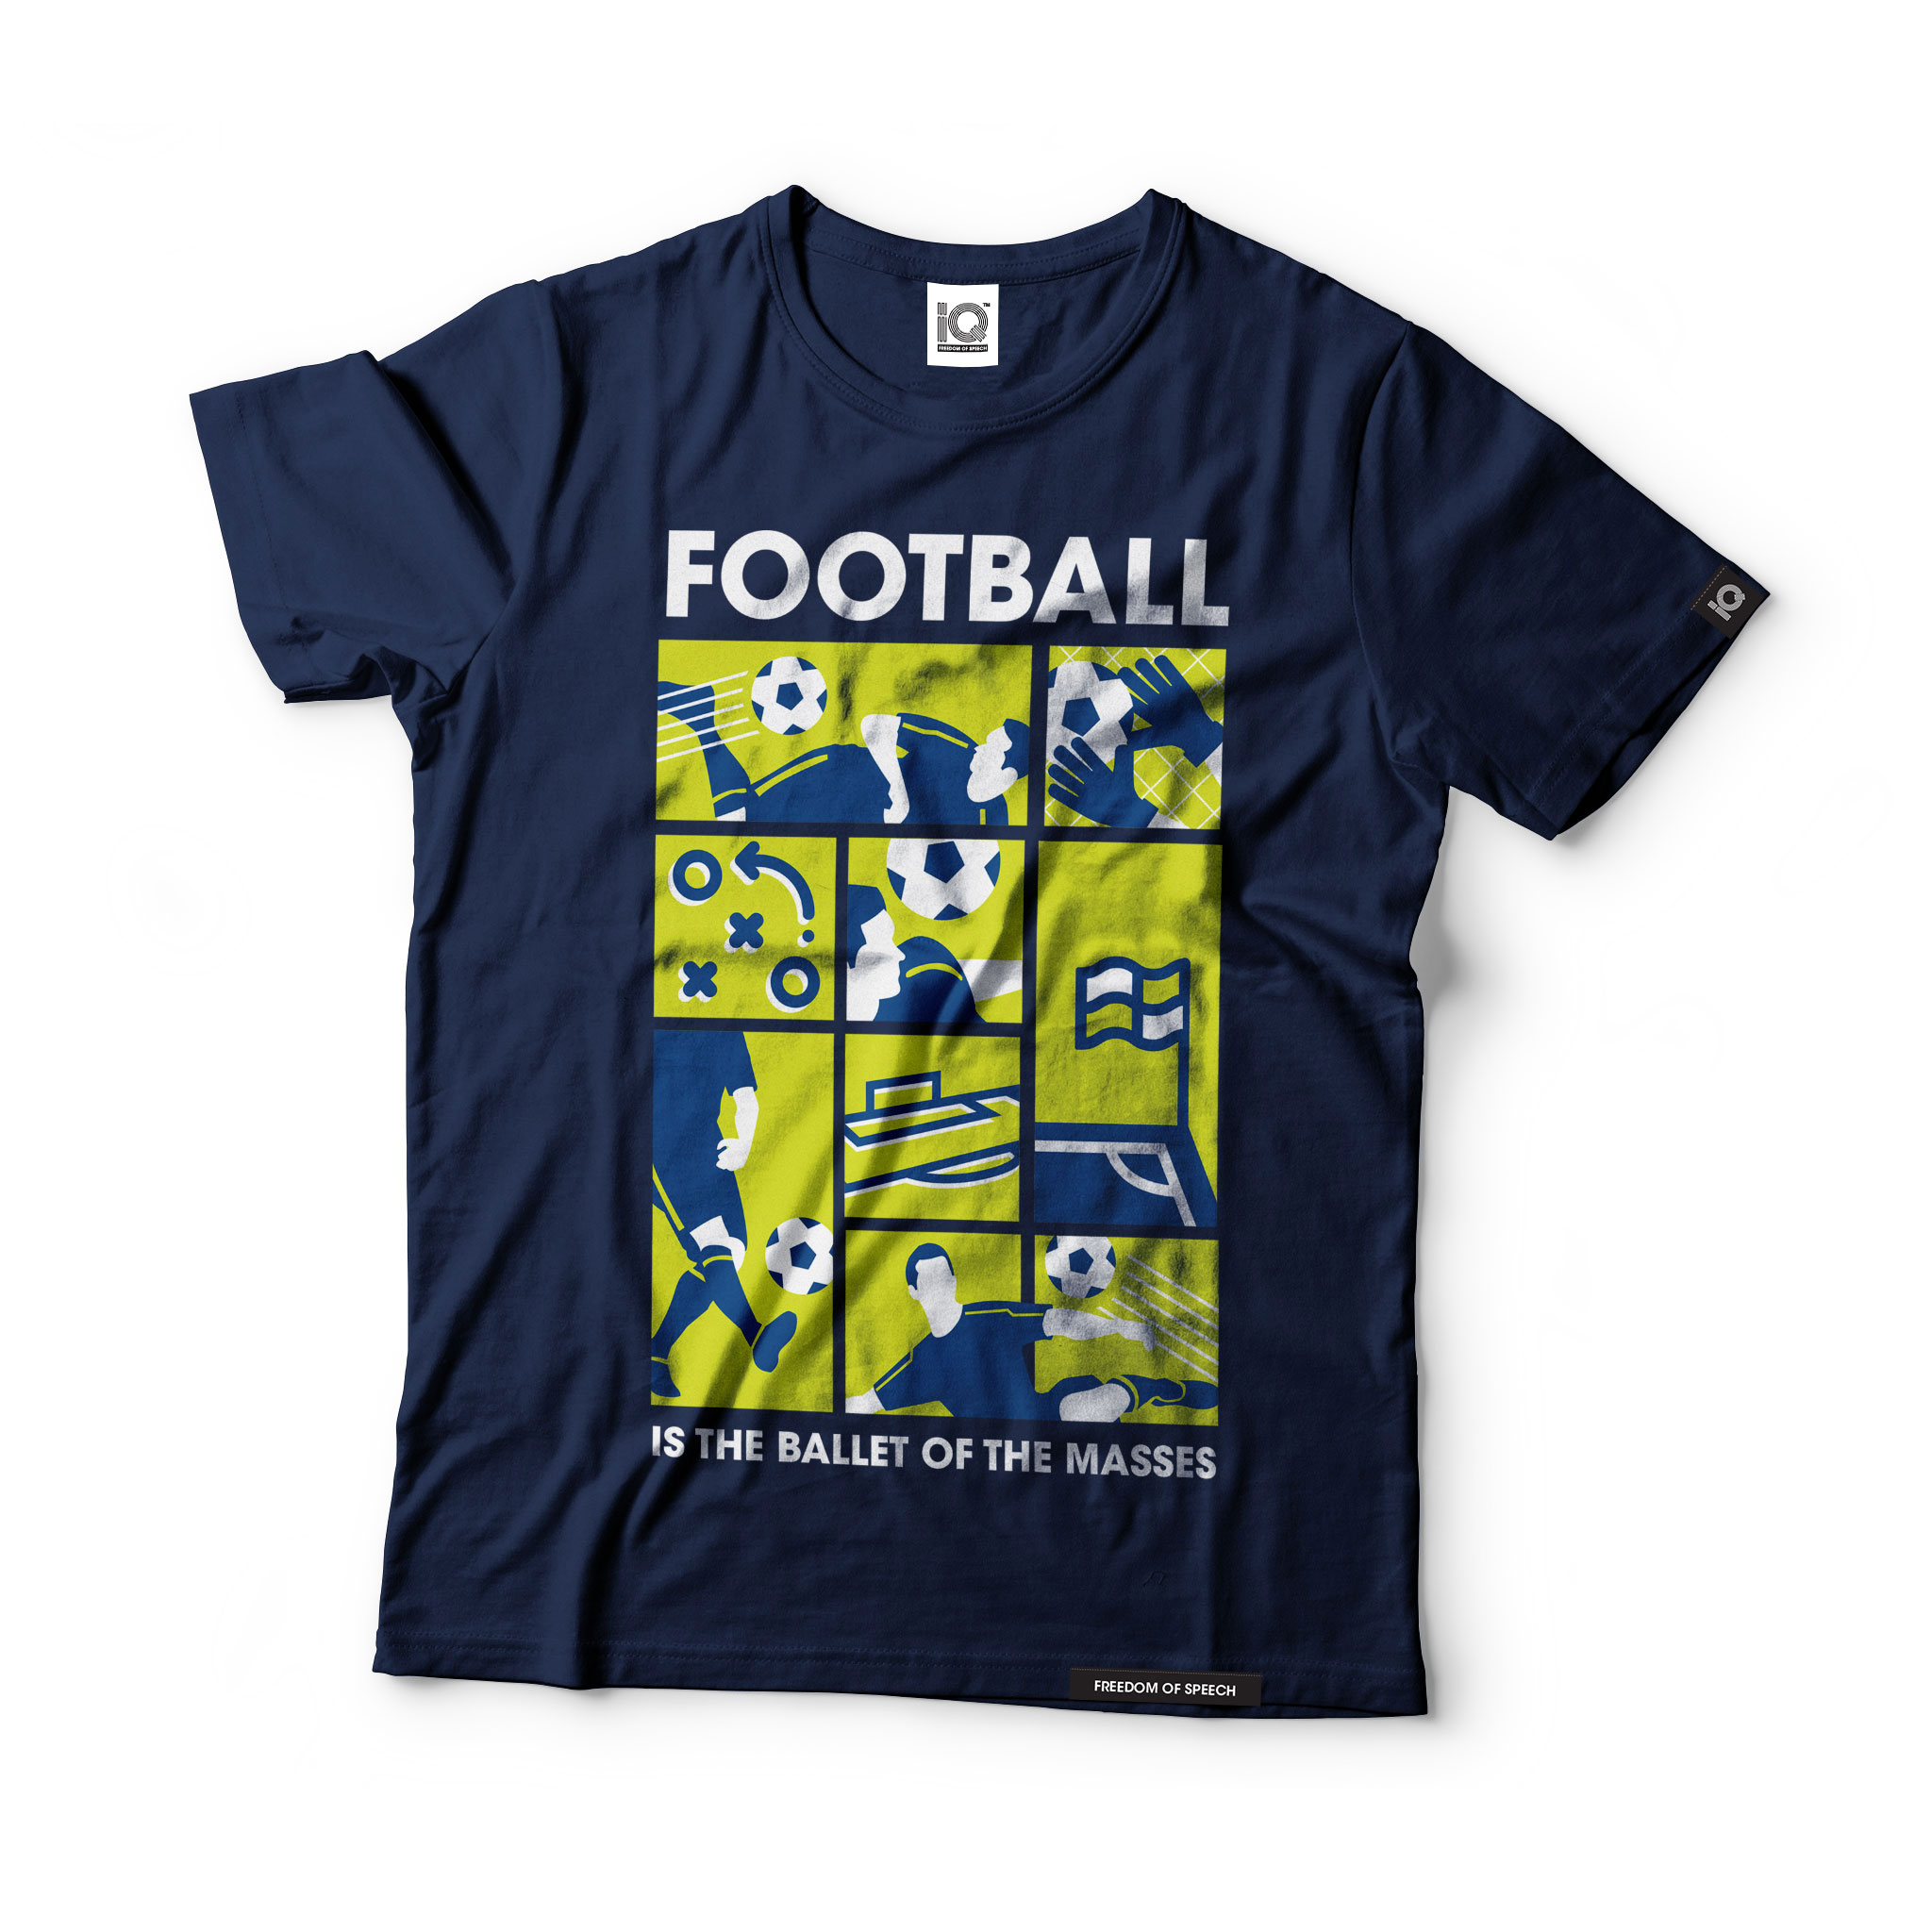 football-is-the-ballet-of-the-masses-navy-tshirt